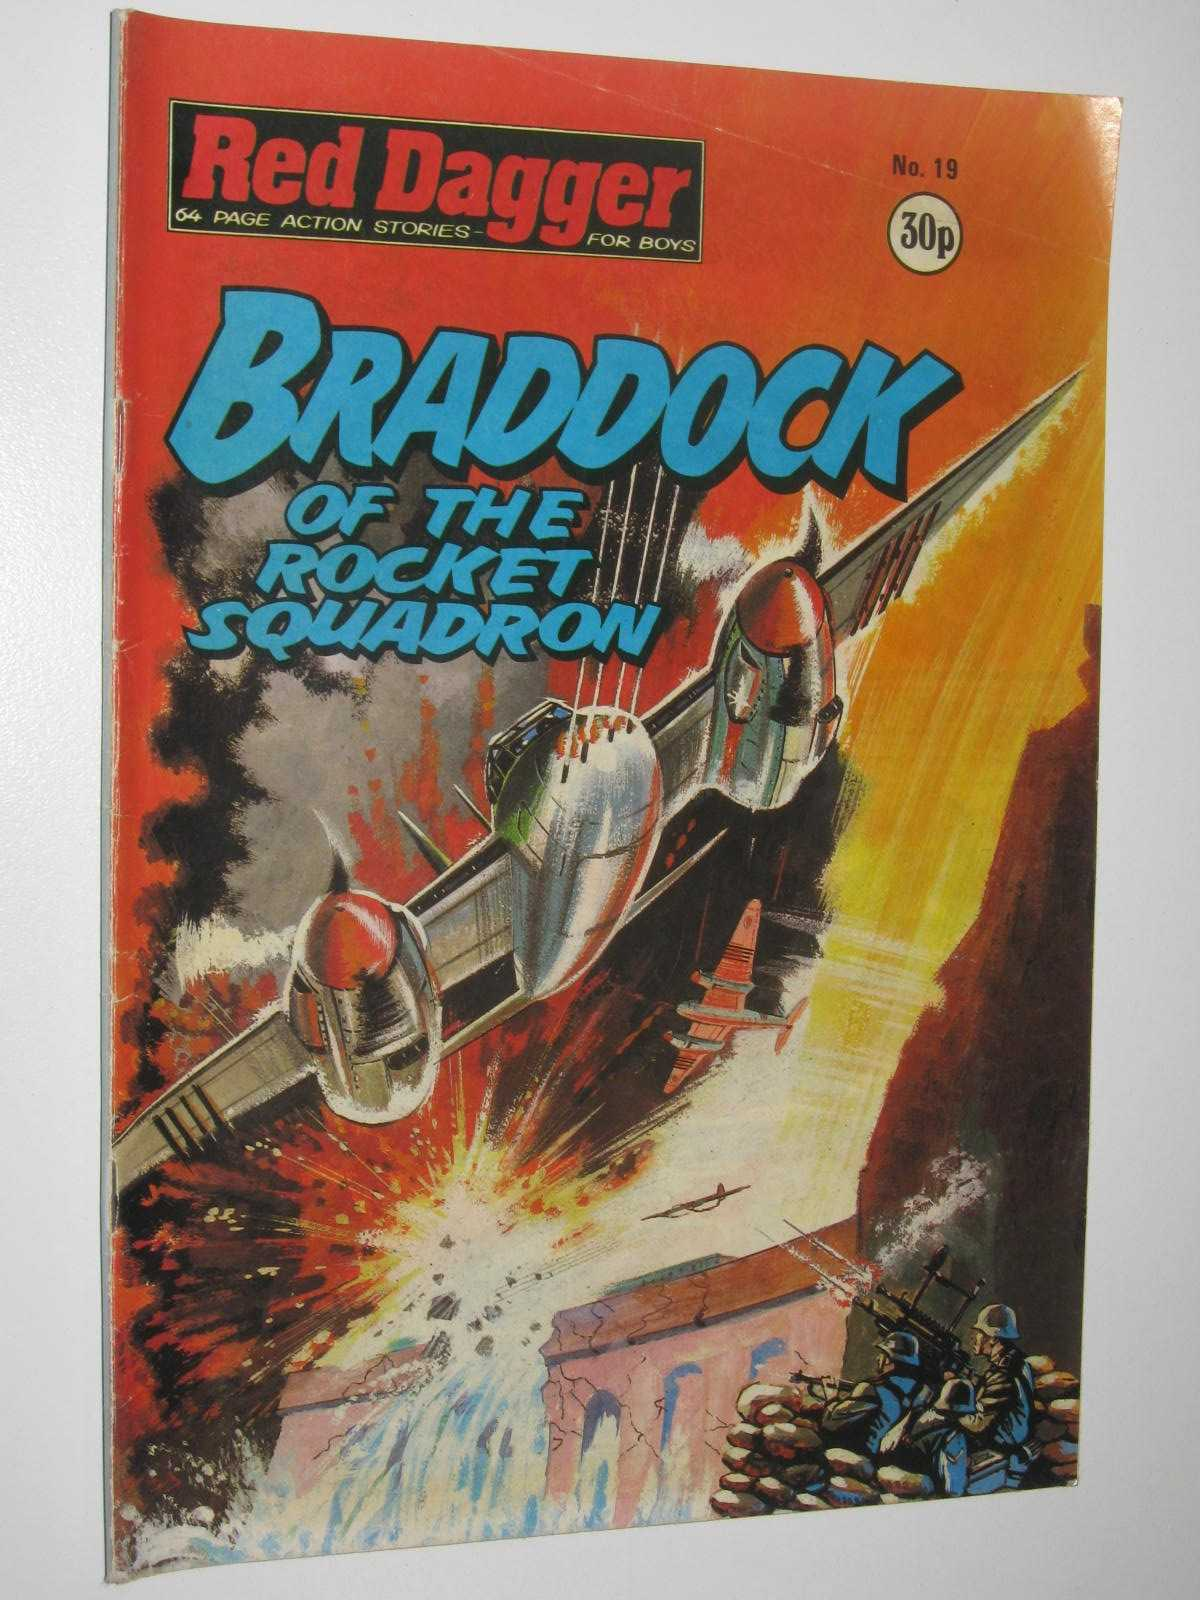 Image for Red Dagger No. 19: Braddock of the Rocket Squadron : 64 Page Action Stories for Boys